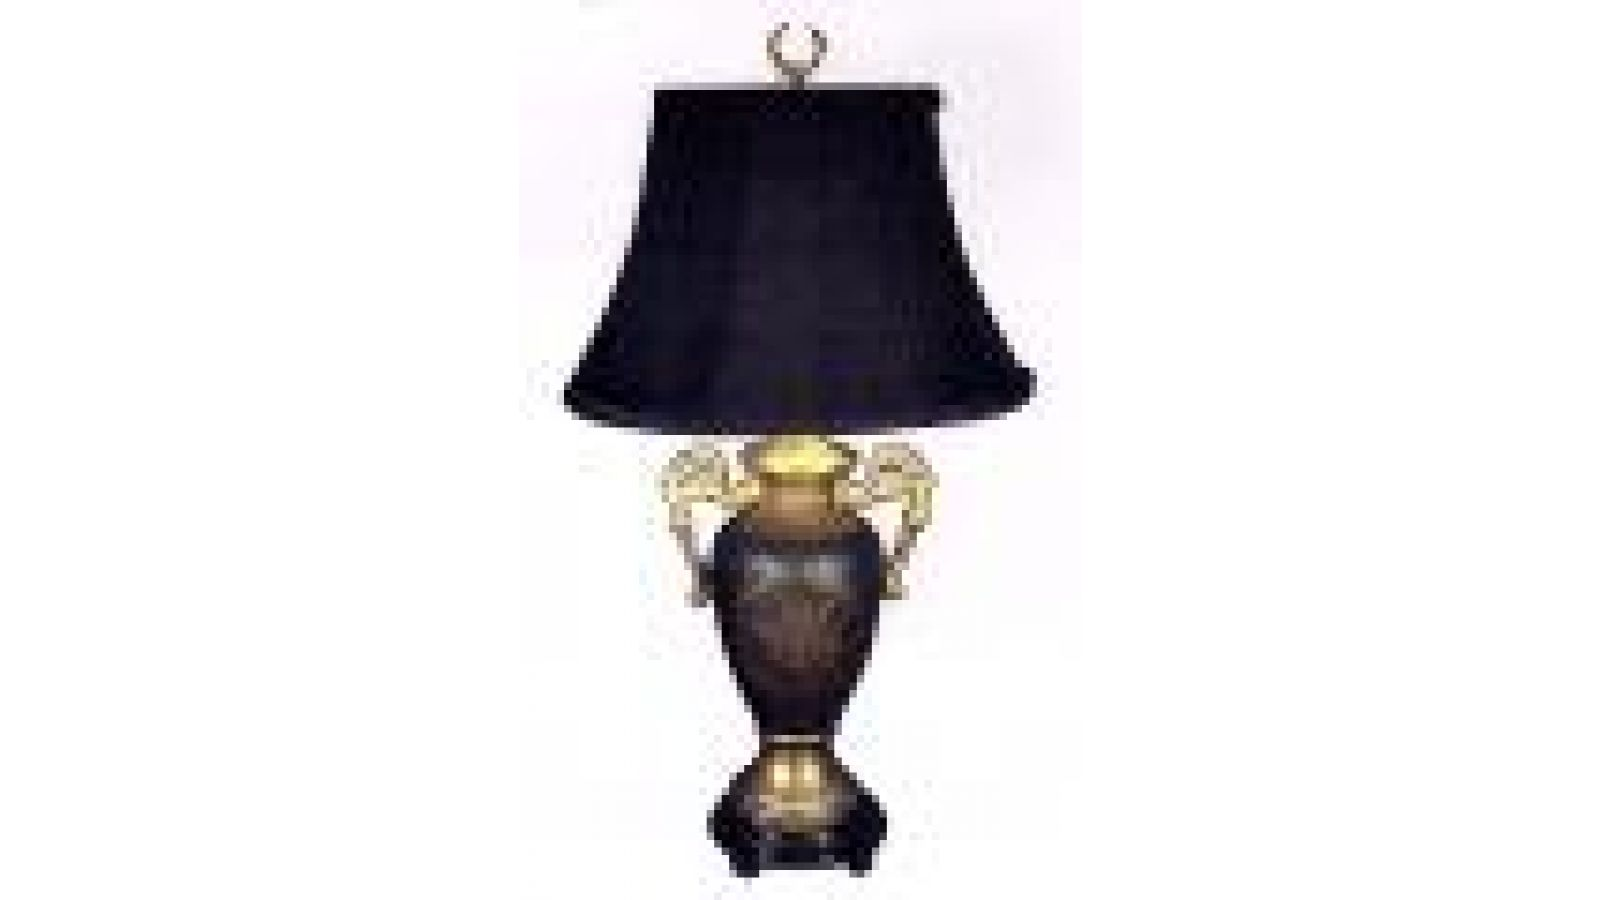 Mfg #: L-8116 LAMP GREEN AND GOLD WITH HANDLES